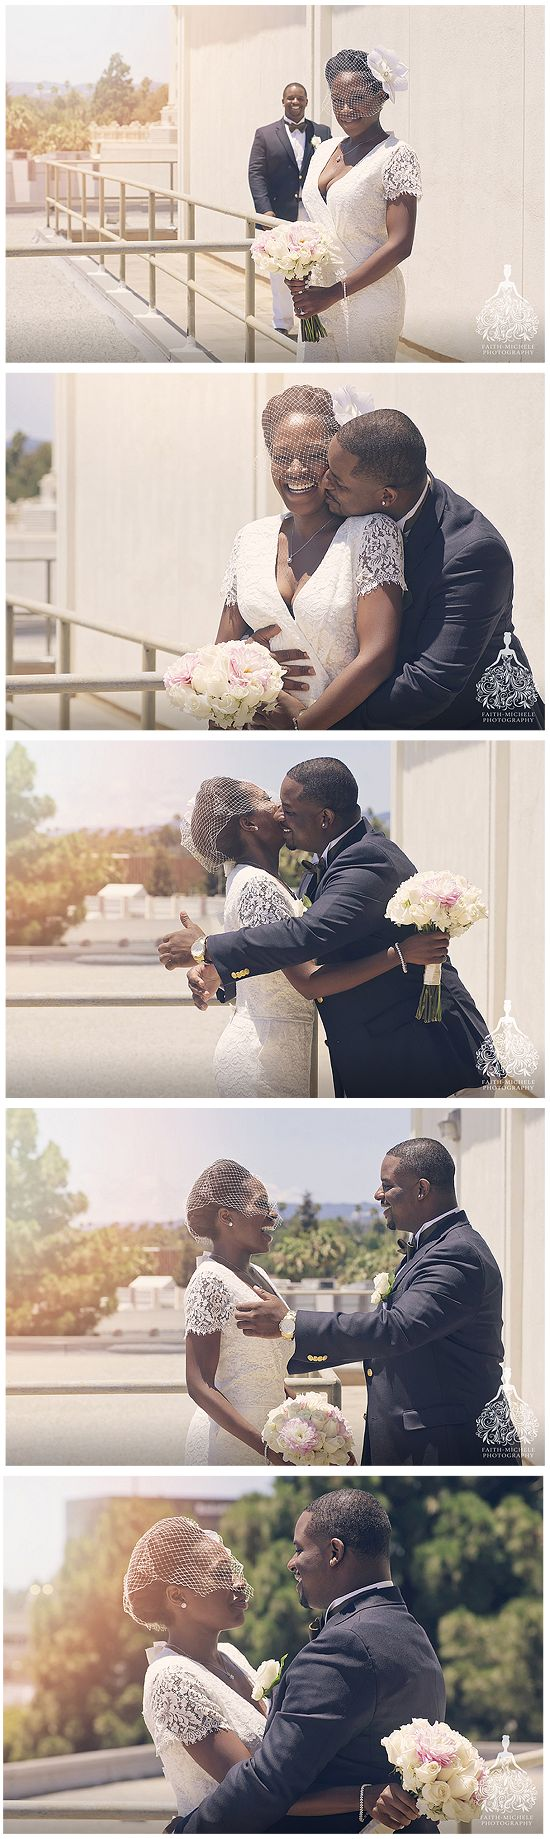 First Look. Beverly Hills Courthouse wedding by LA's premier Beverly Hills Courthouse and elopement wedding photographer. FAQ: http://faith-michele.com/beverly-hills-courthouse-wedding-faq/